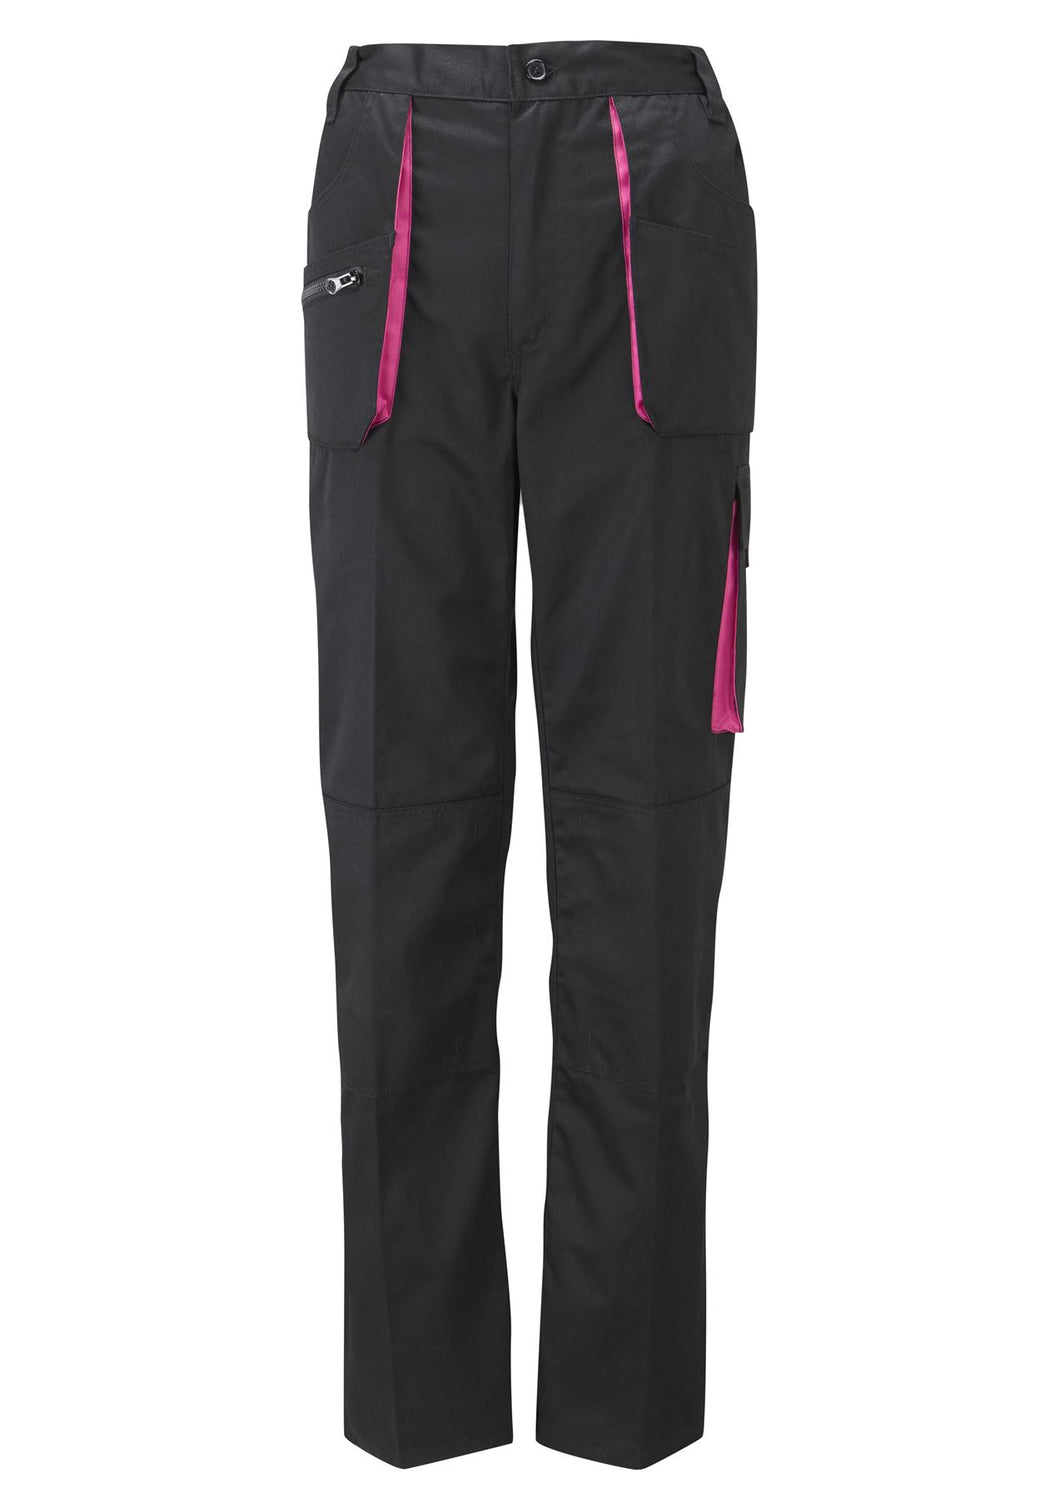 Womens Action Trousers - Black - Work Kit Girl